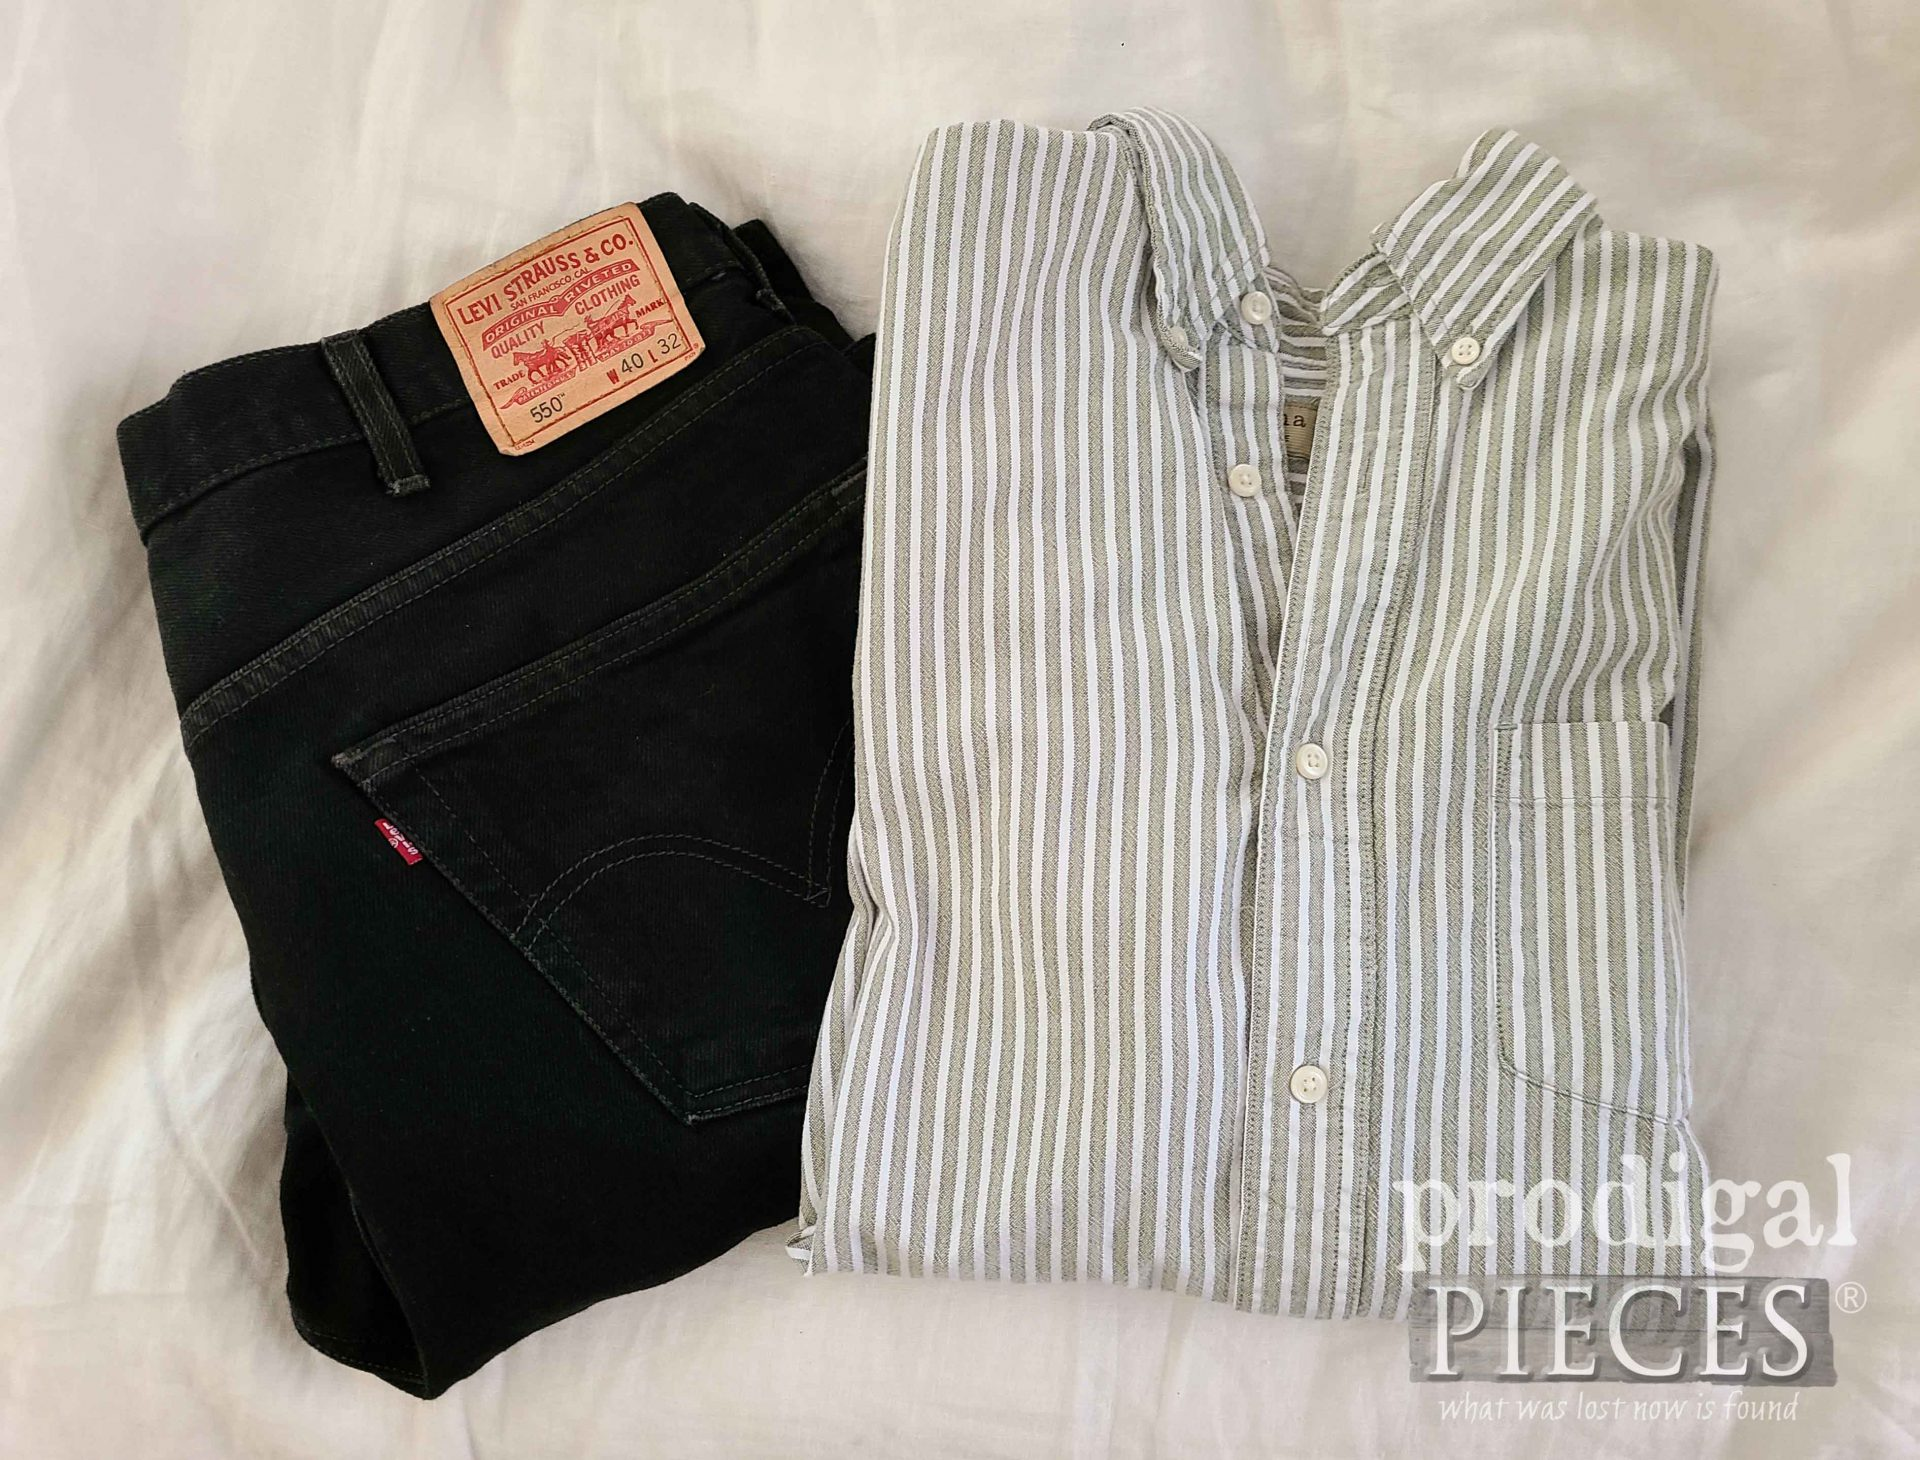 Pants and Shirt Before Refashion by Larissa of Prodigal Pieces | prodigalpieces.com